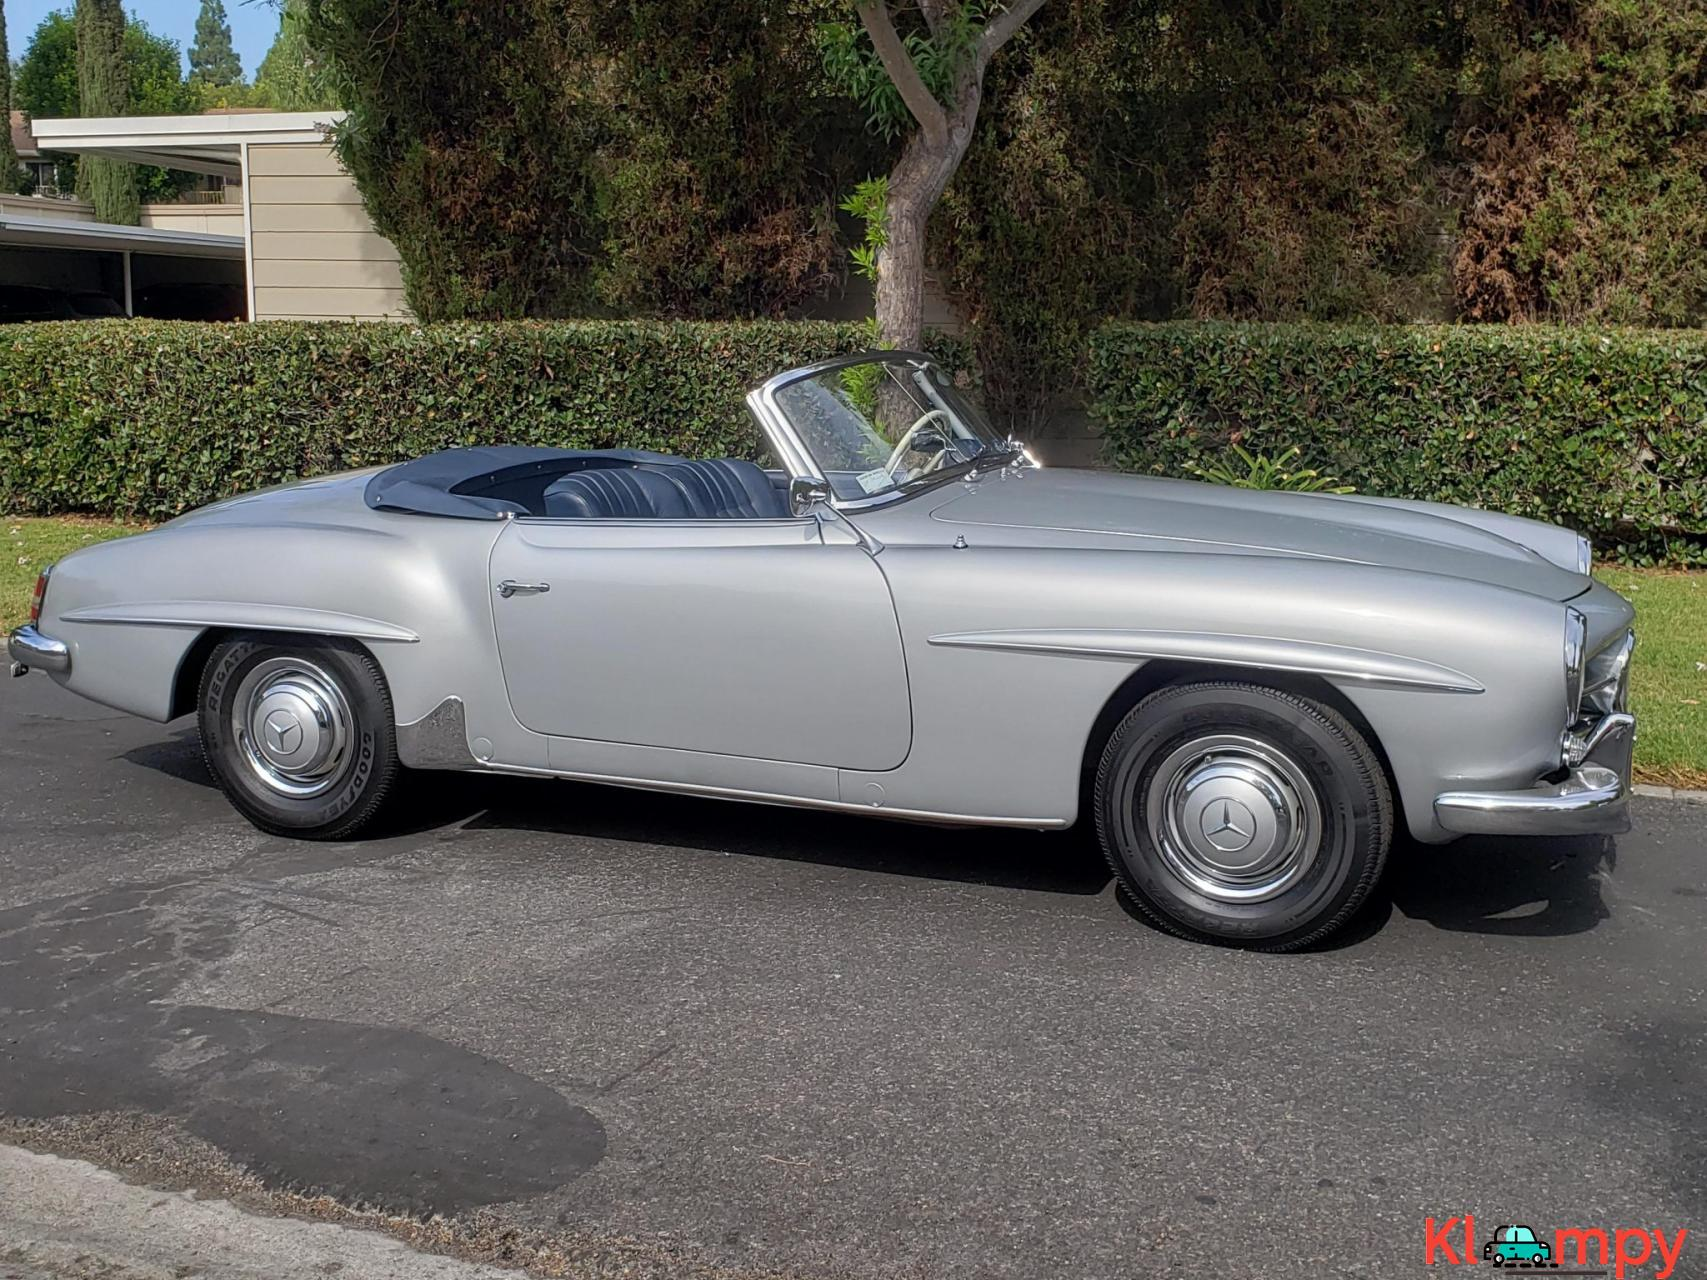 1957 Mercedes-Benz 190SL Brilliant Silver - 7/20